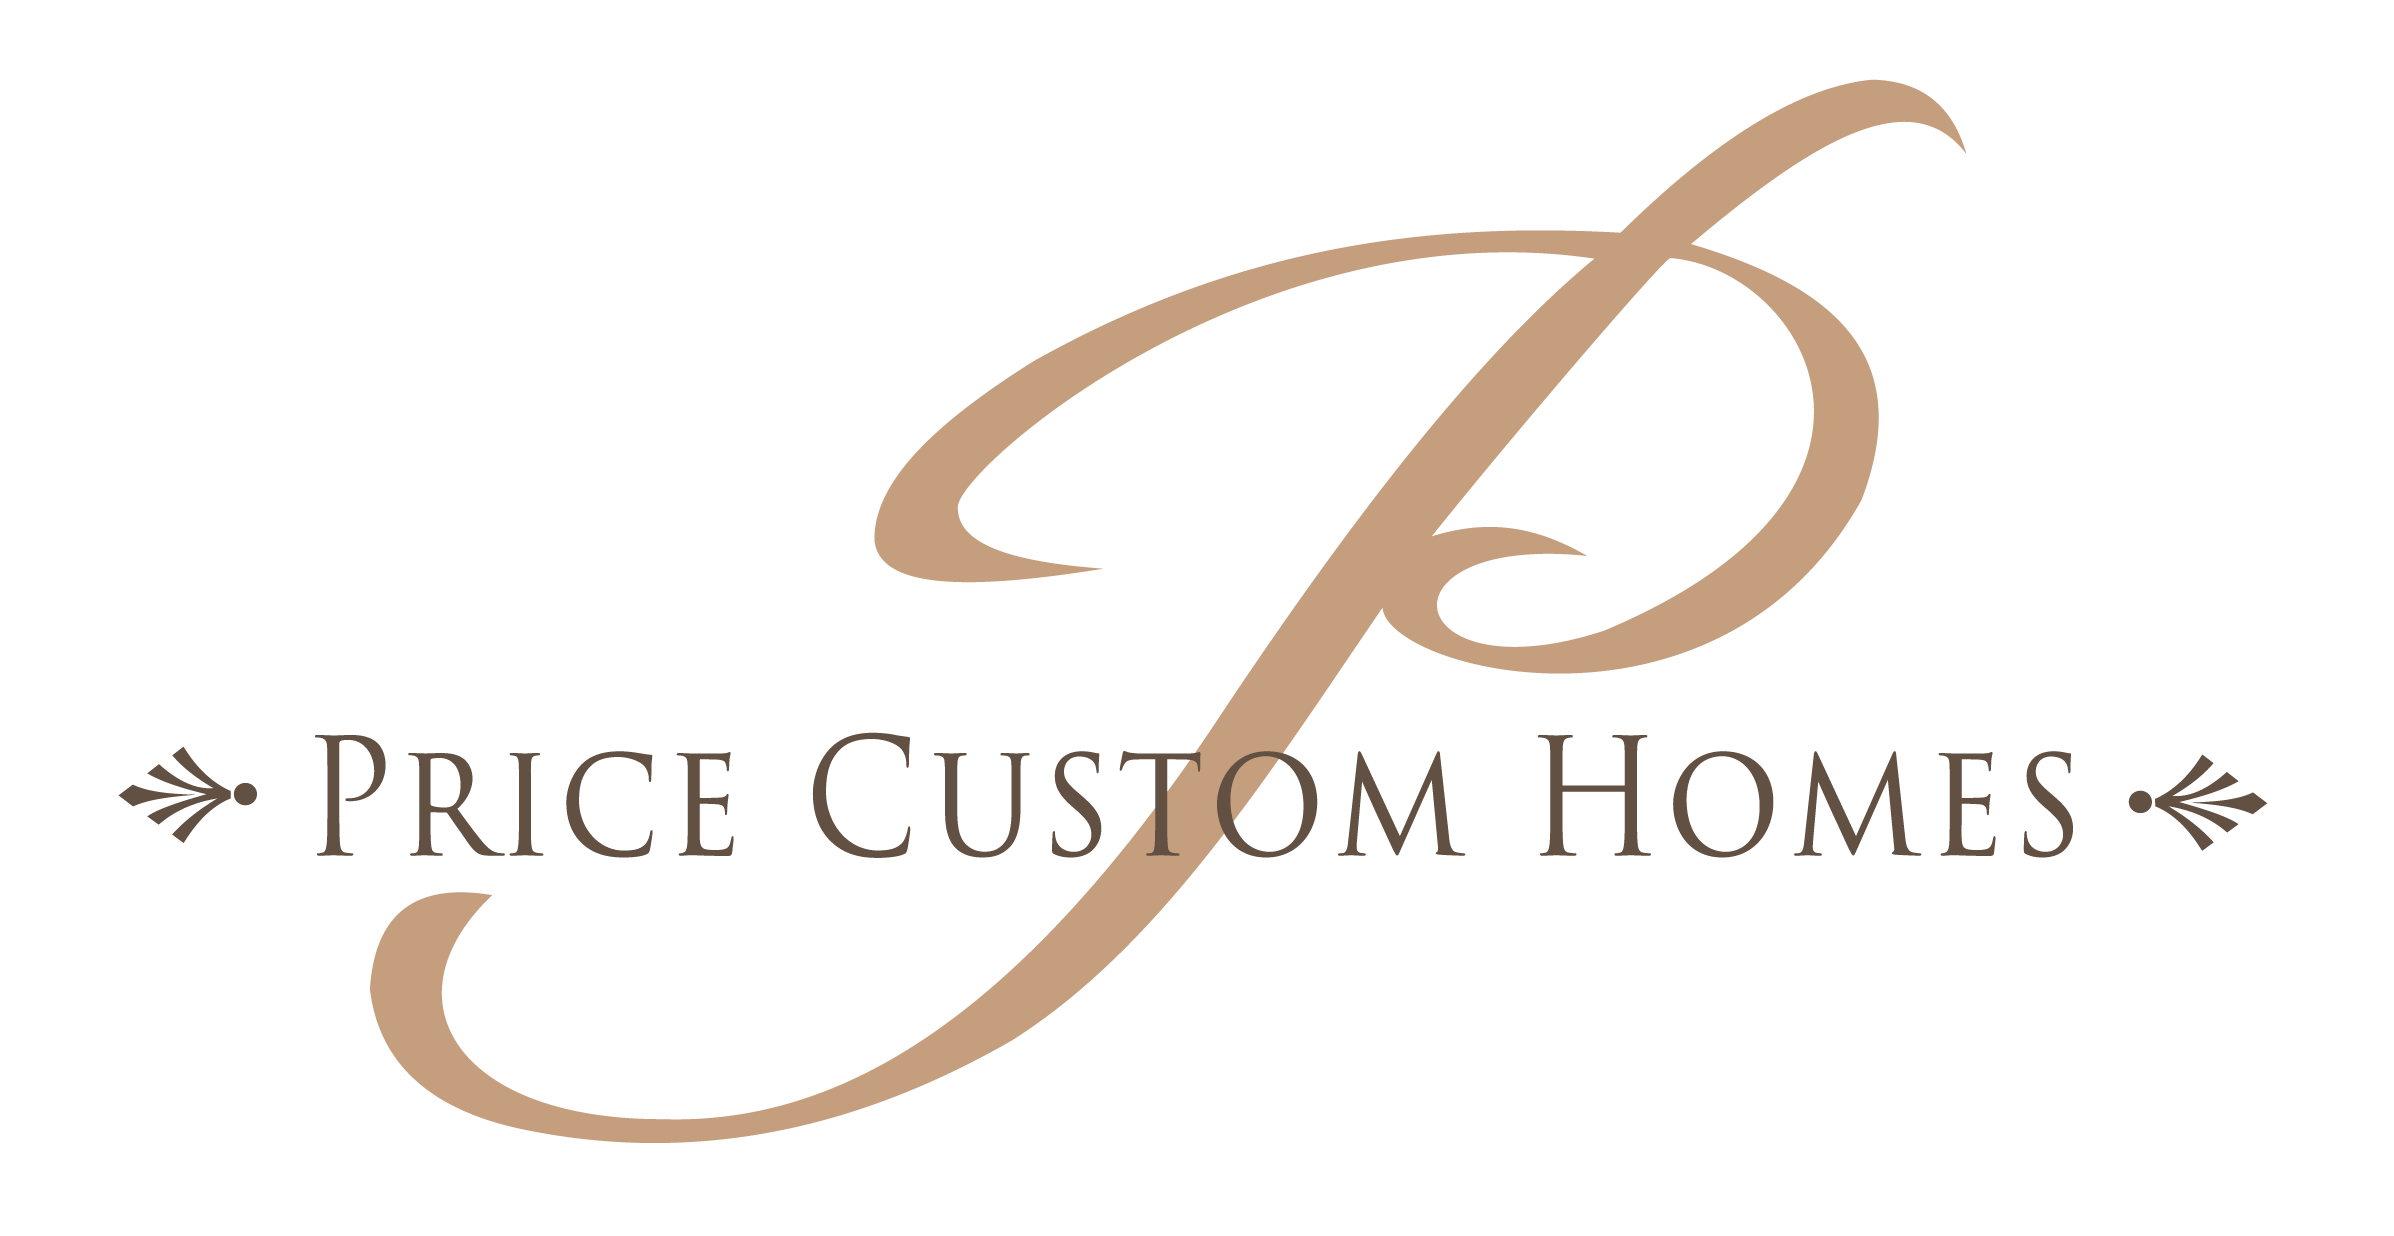 Price Custom Homes